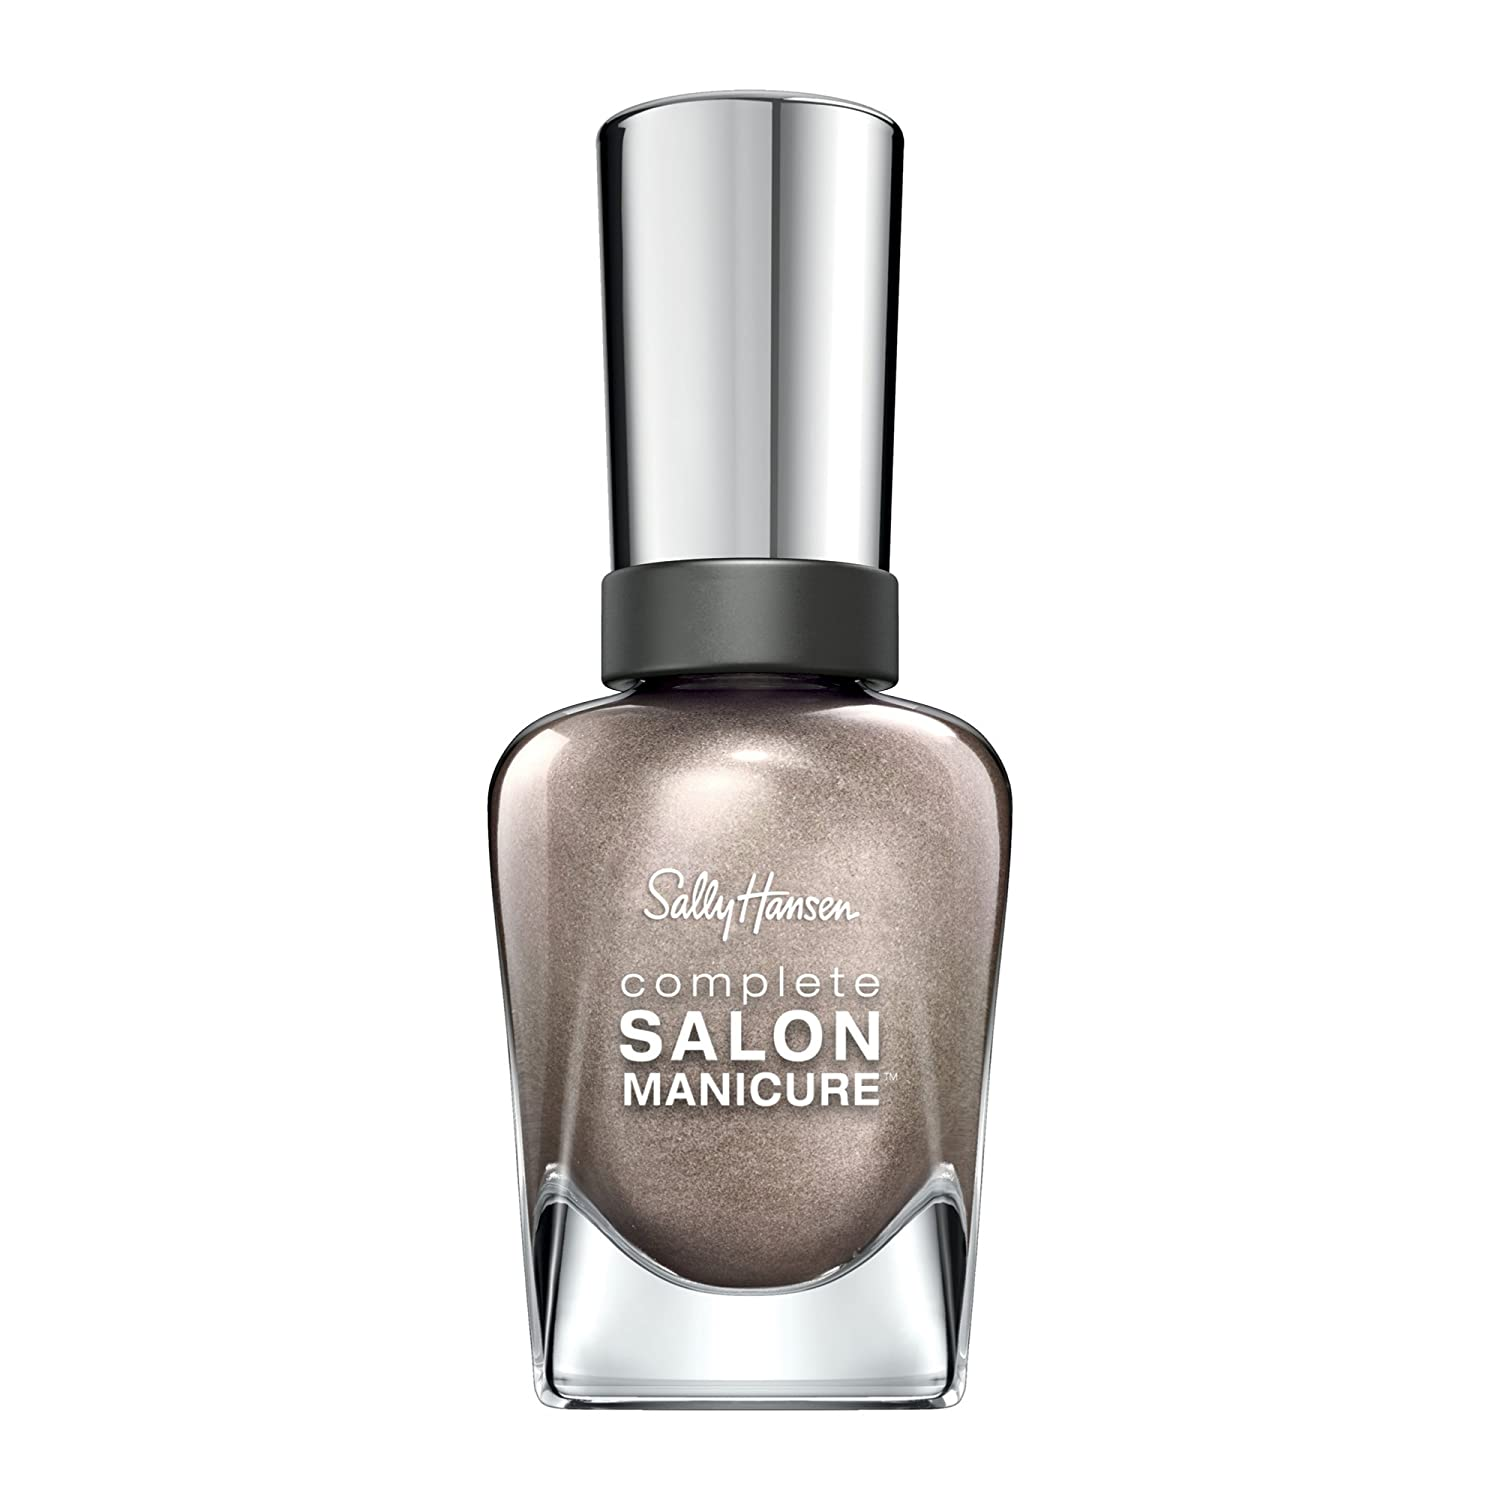 Sally Hansen - Complete Salon Manicure Nail Color, Metallics